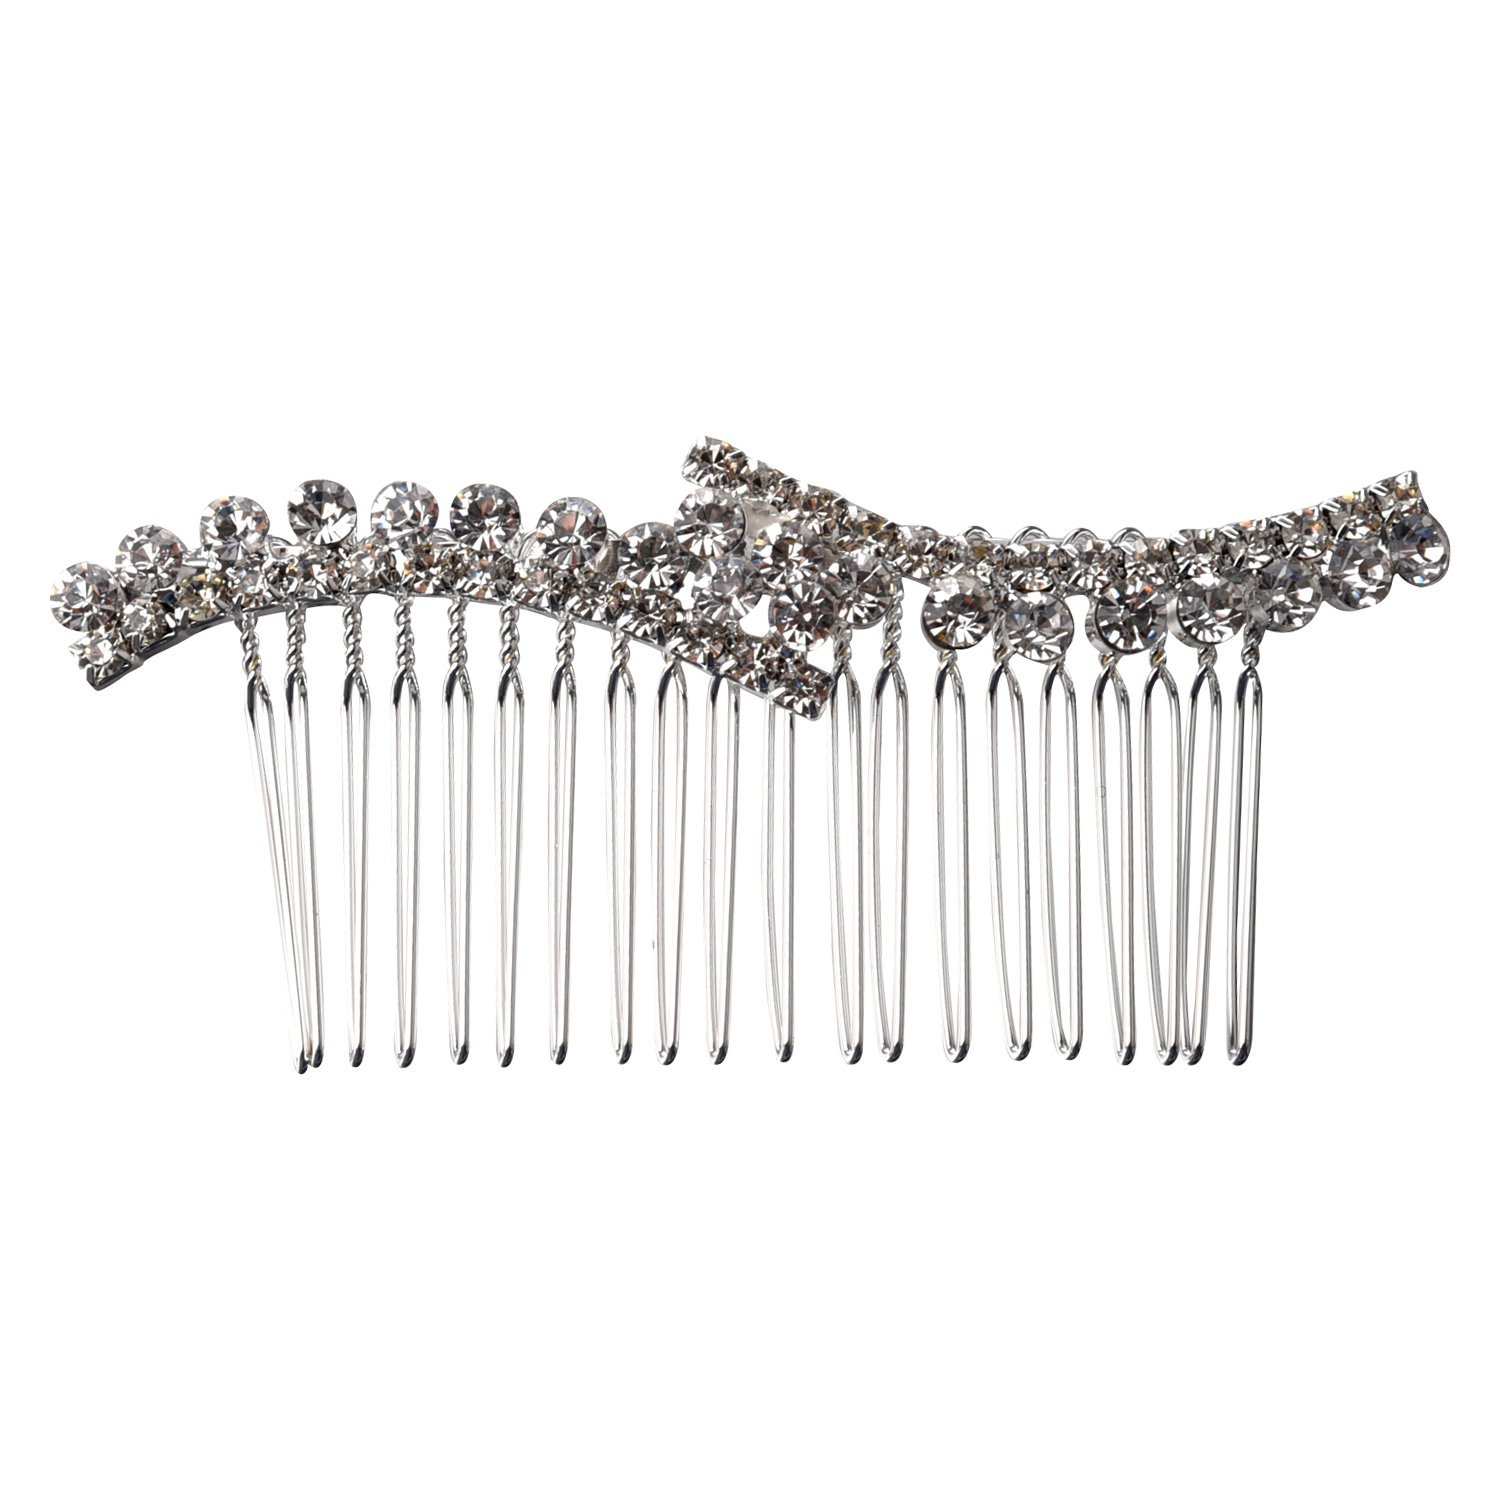 SODIAL Silver Plated Rhinestone Crystal Bridal Tiara Hair Slide Comb Pin Women Fashion